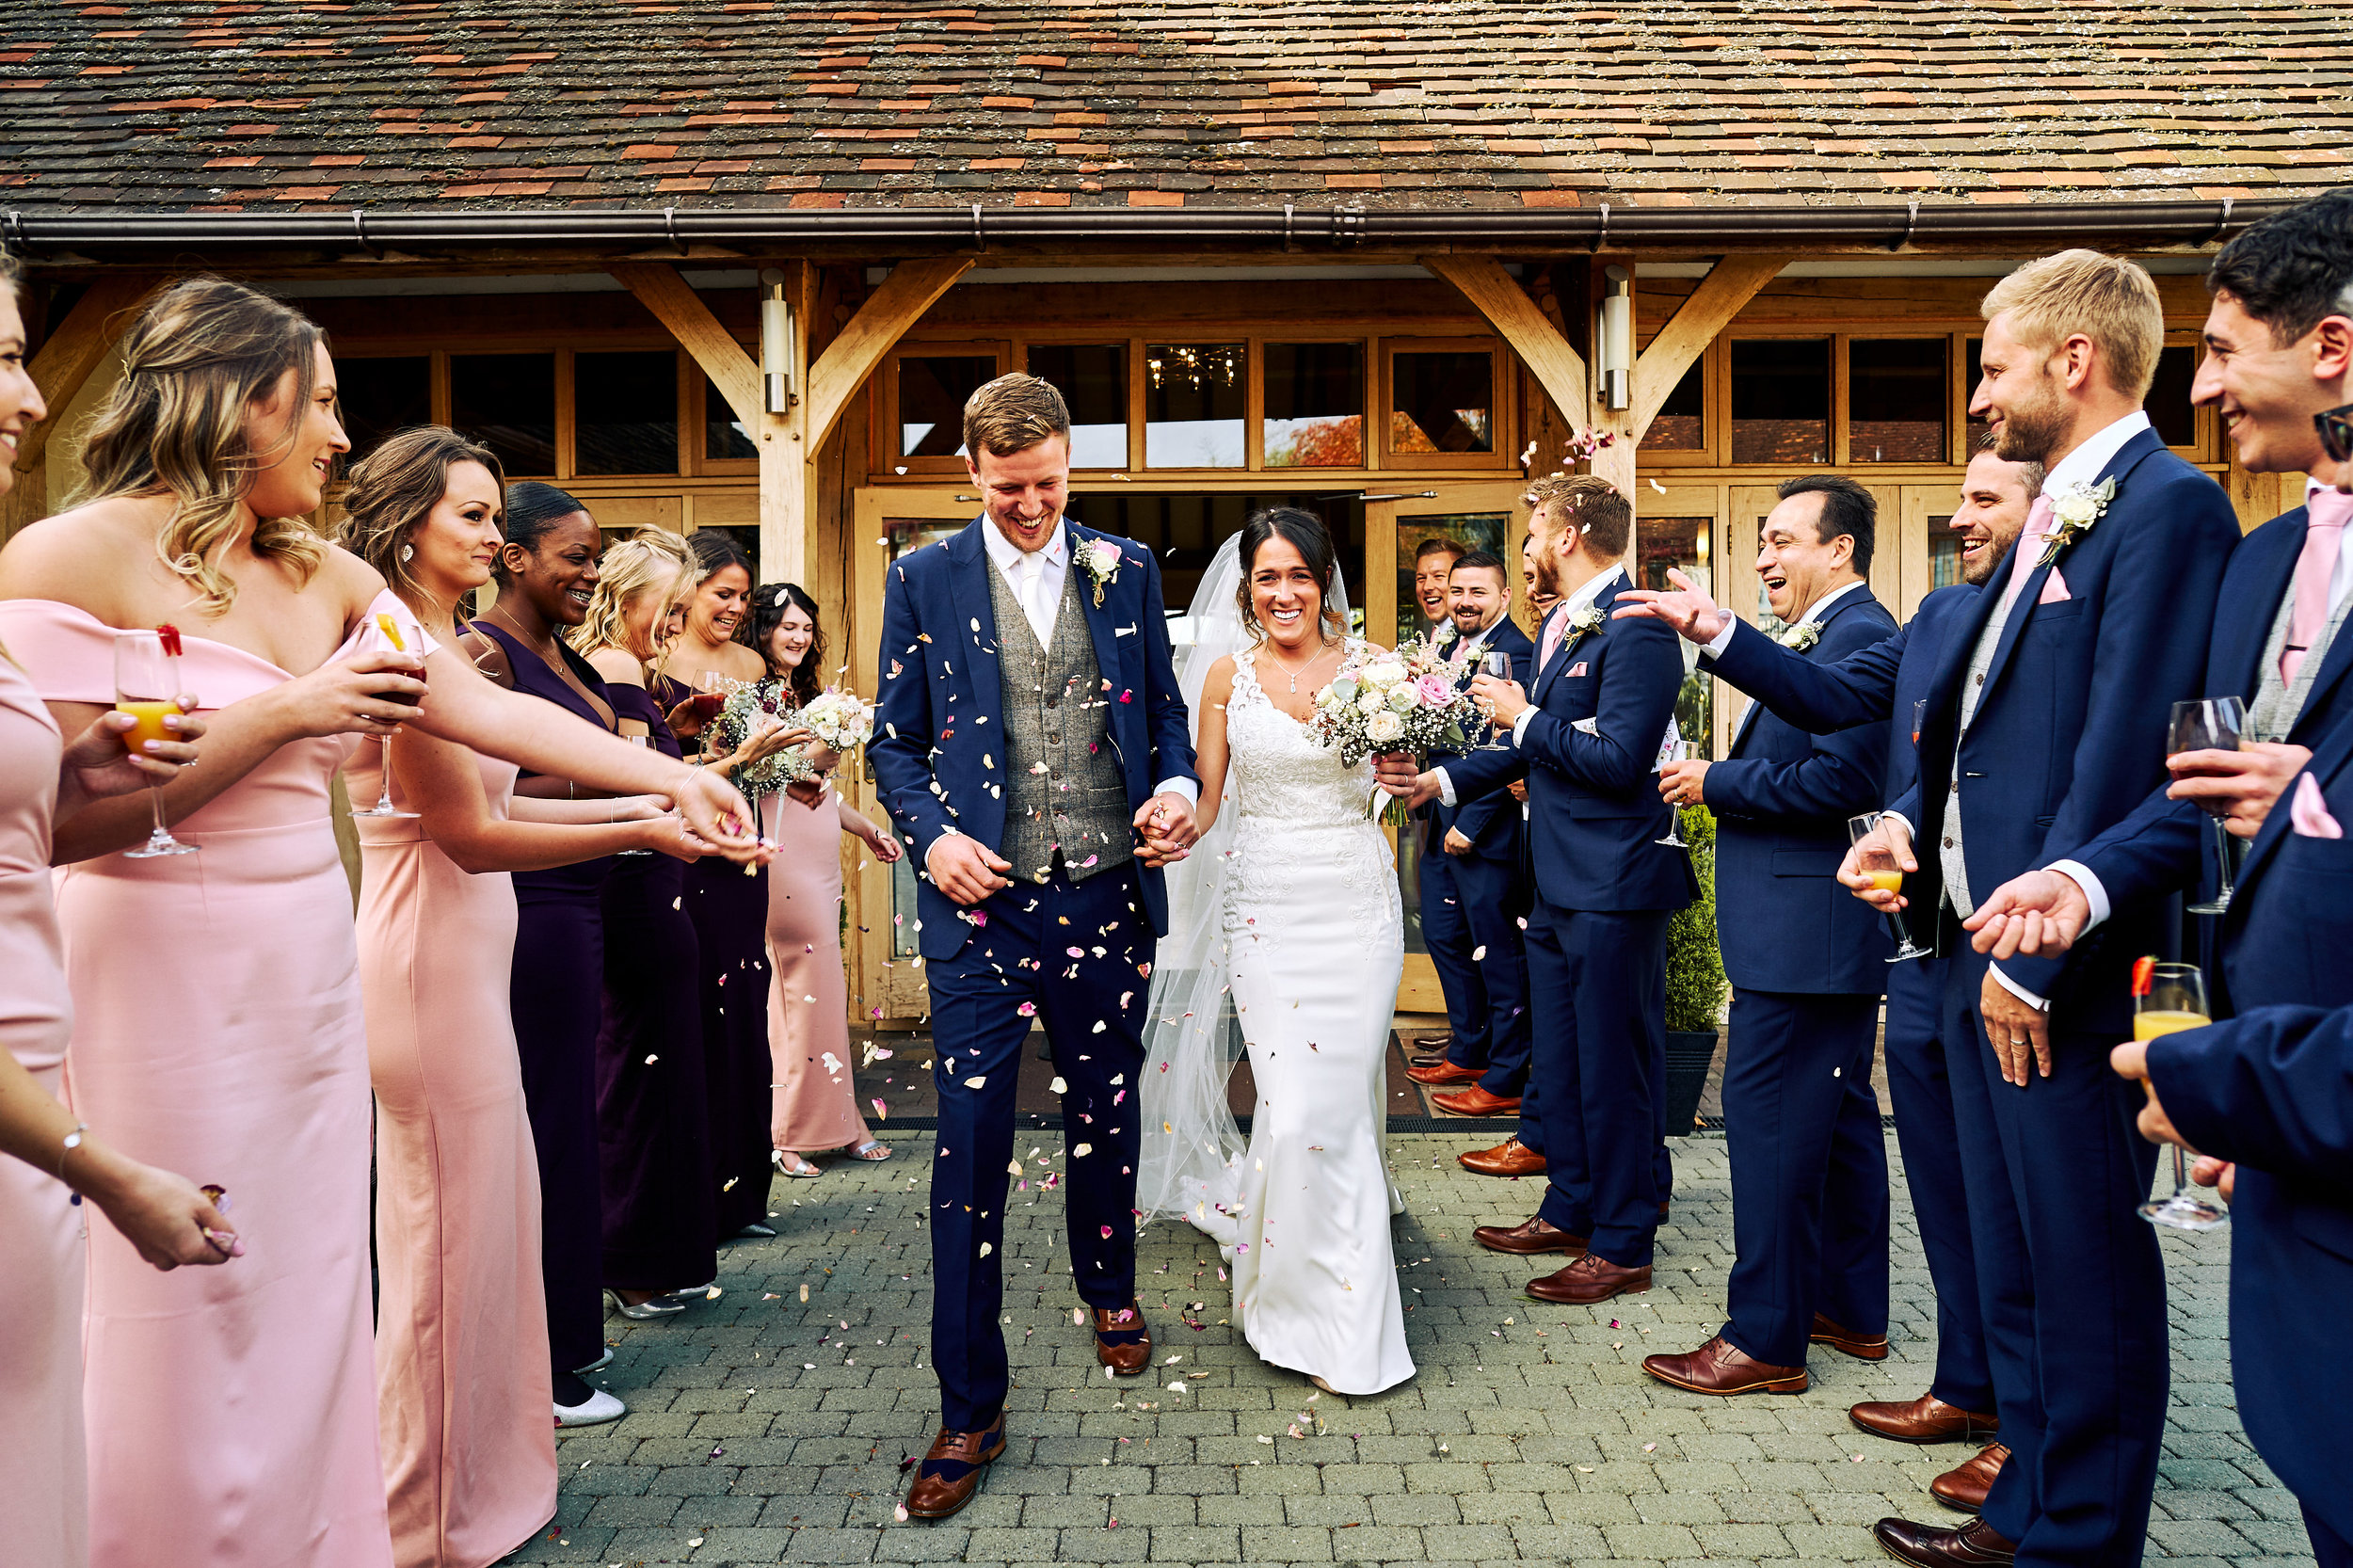 Ten Hour £900 - The next step up is the ten-hour package.This usually captures everything from bridal preparation through to the first dance.